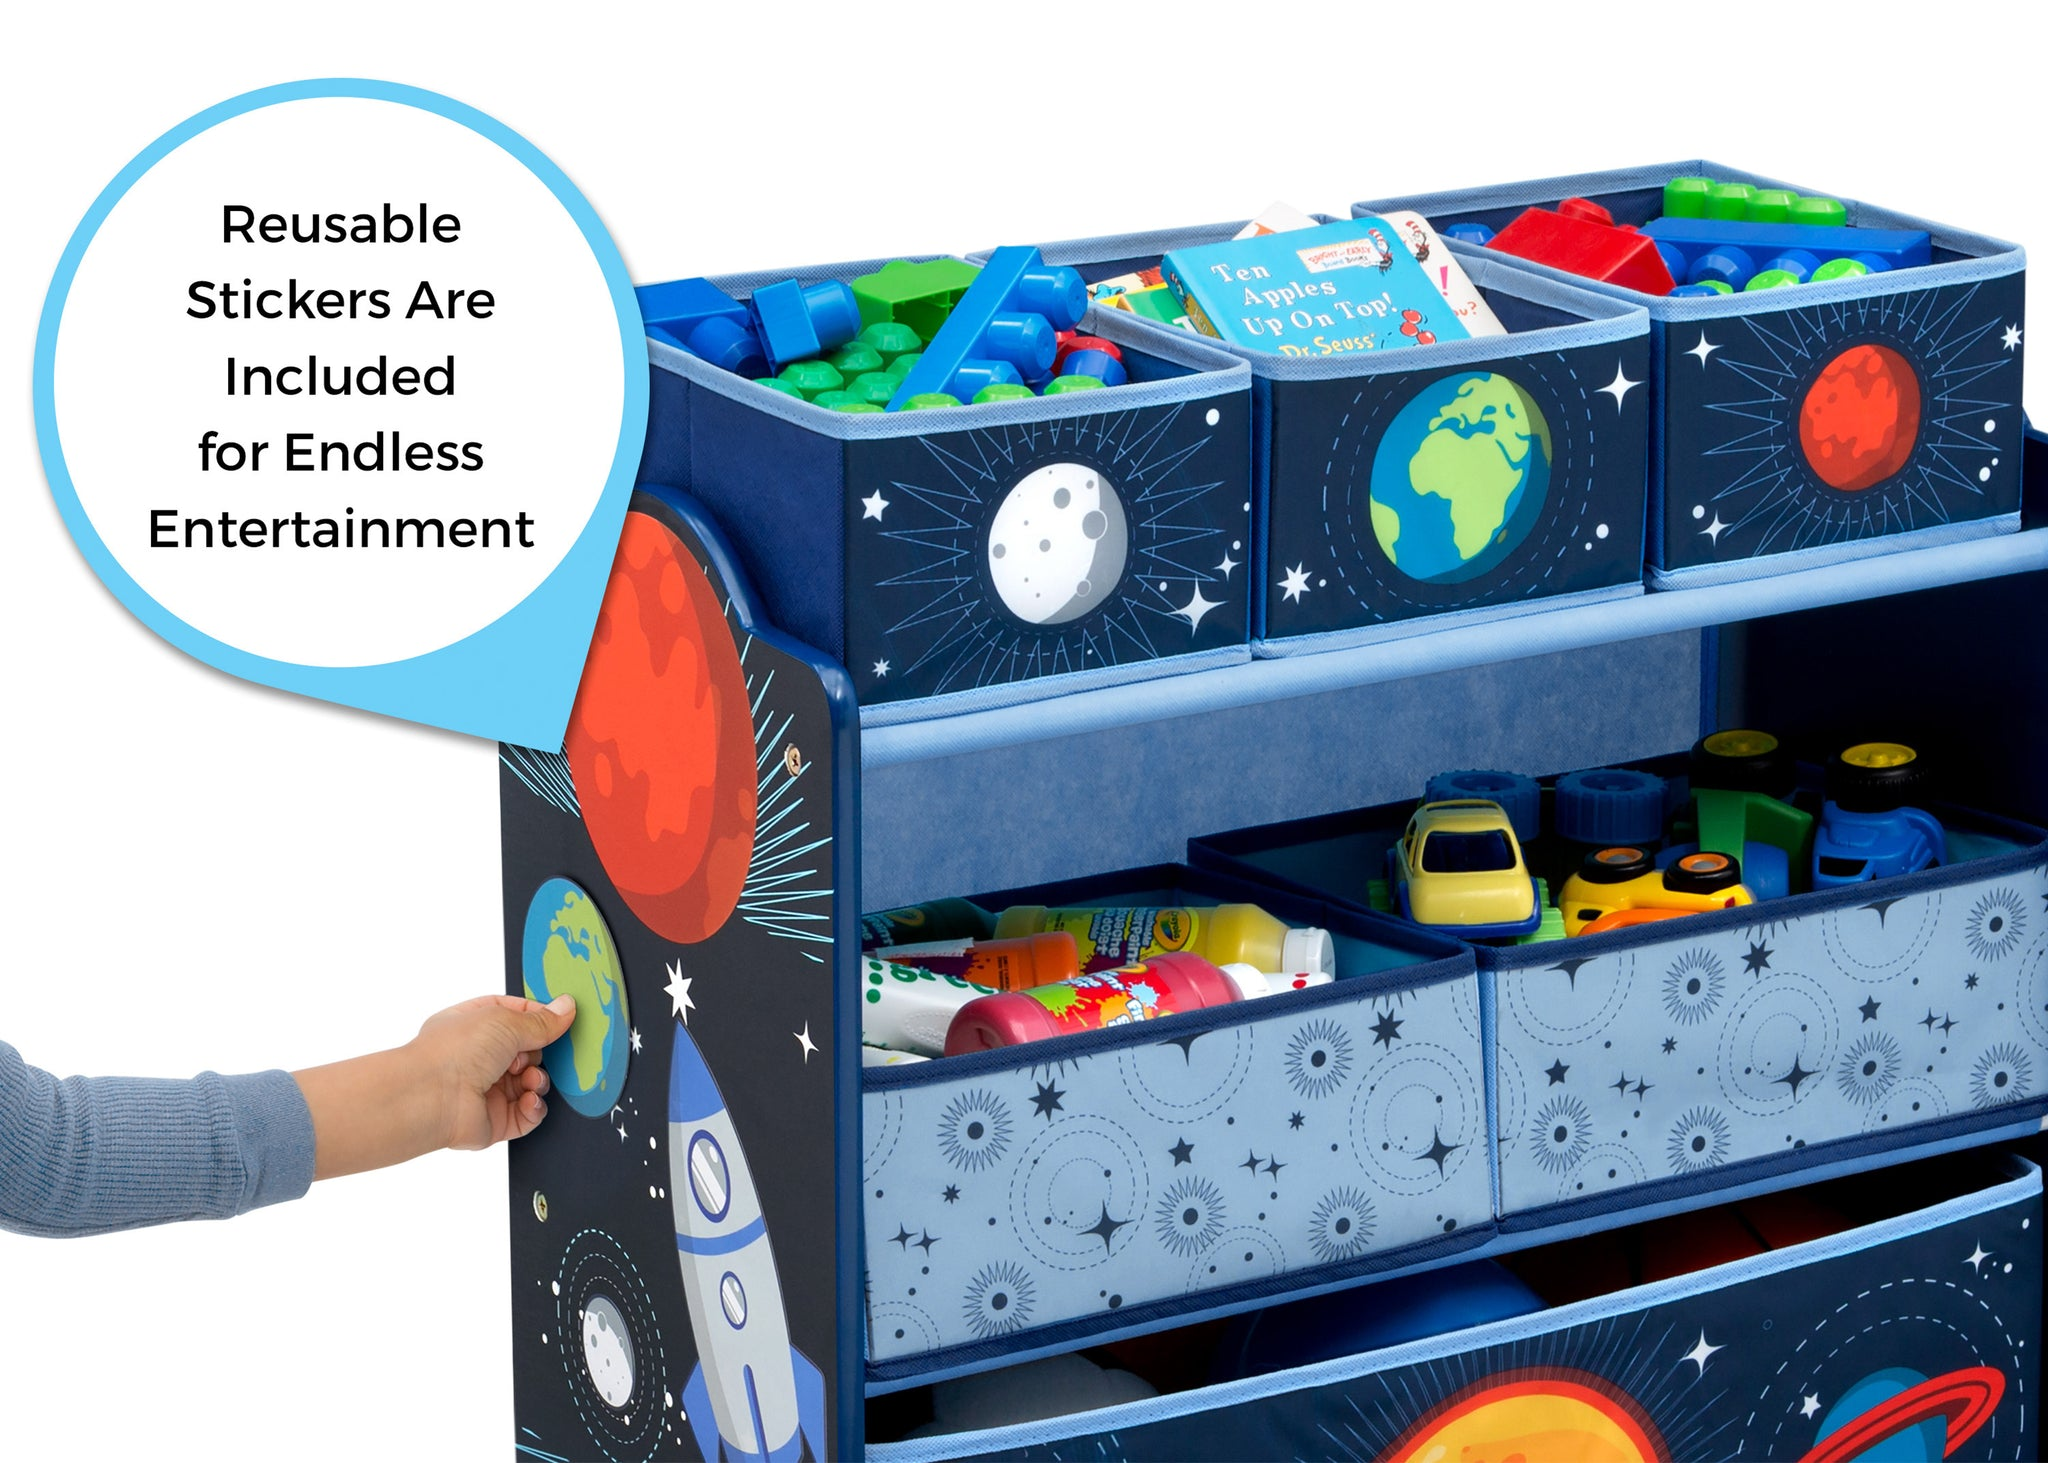 Delta Children Space Adventures (1223) Design and Store Toy Organizer, Reusable Stickers View